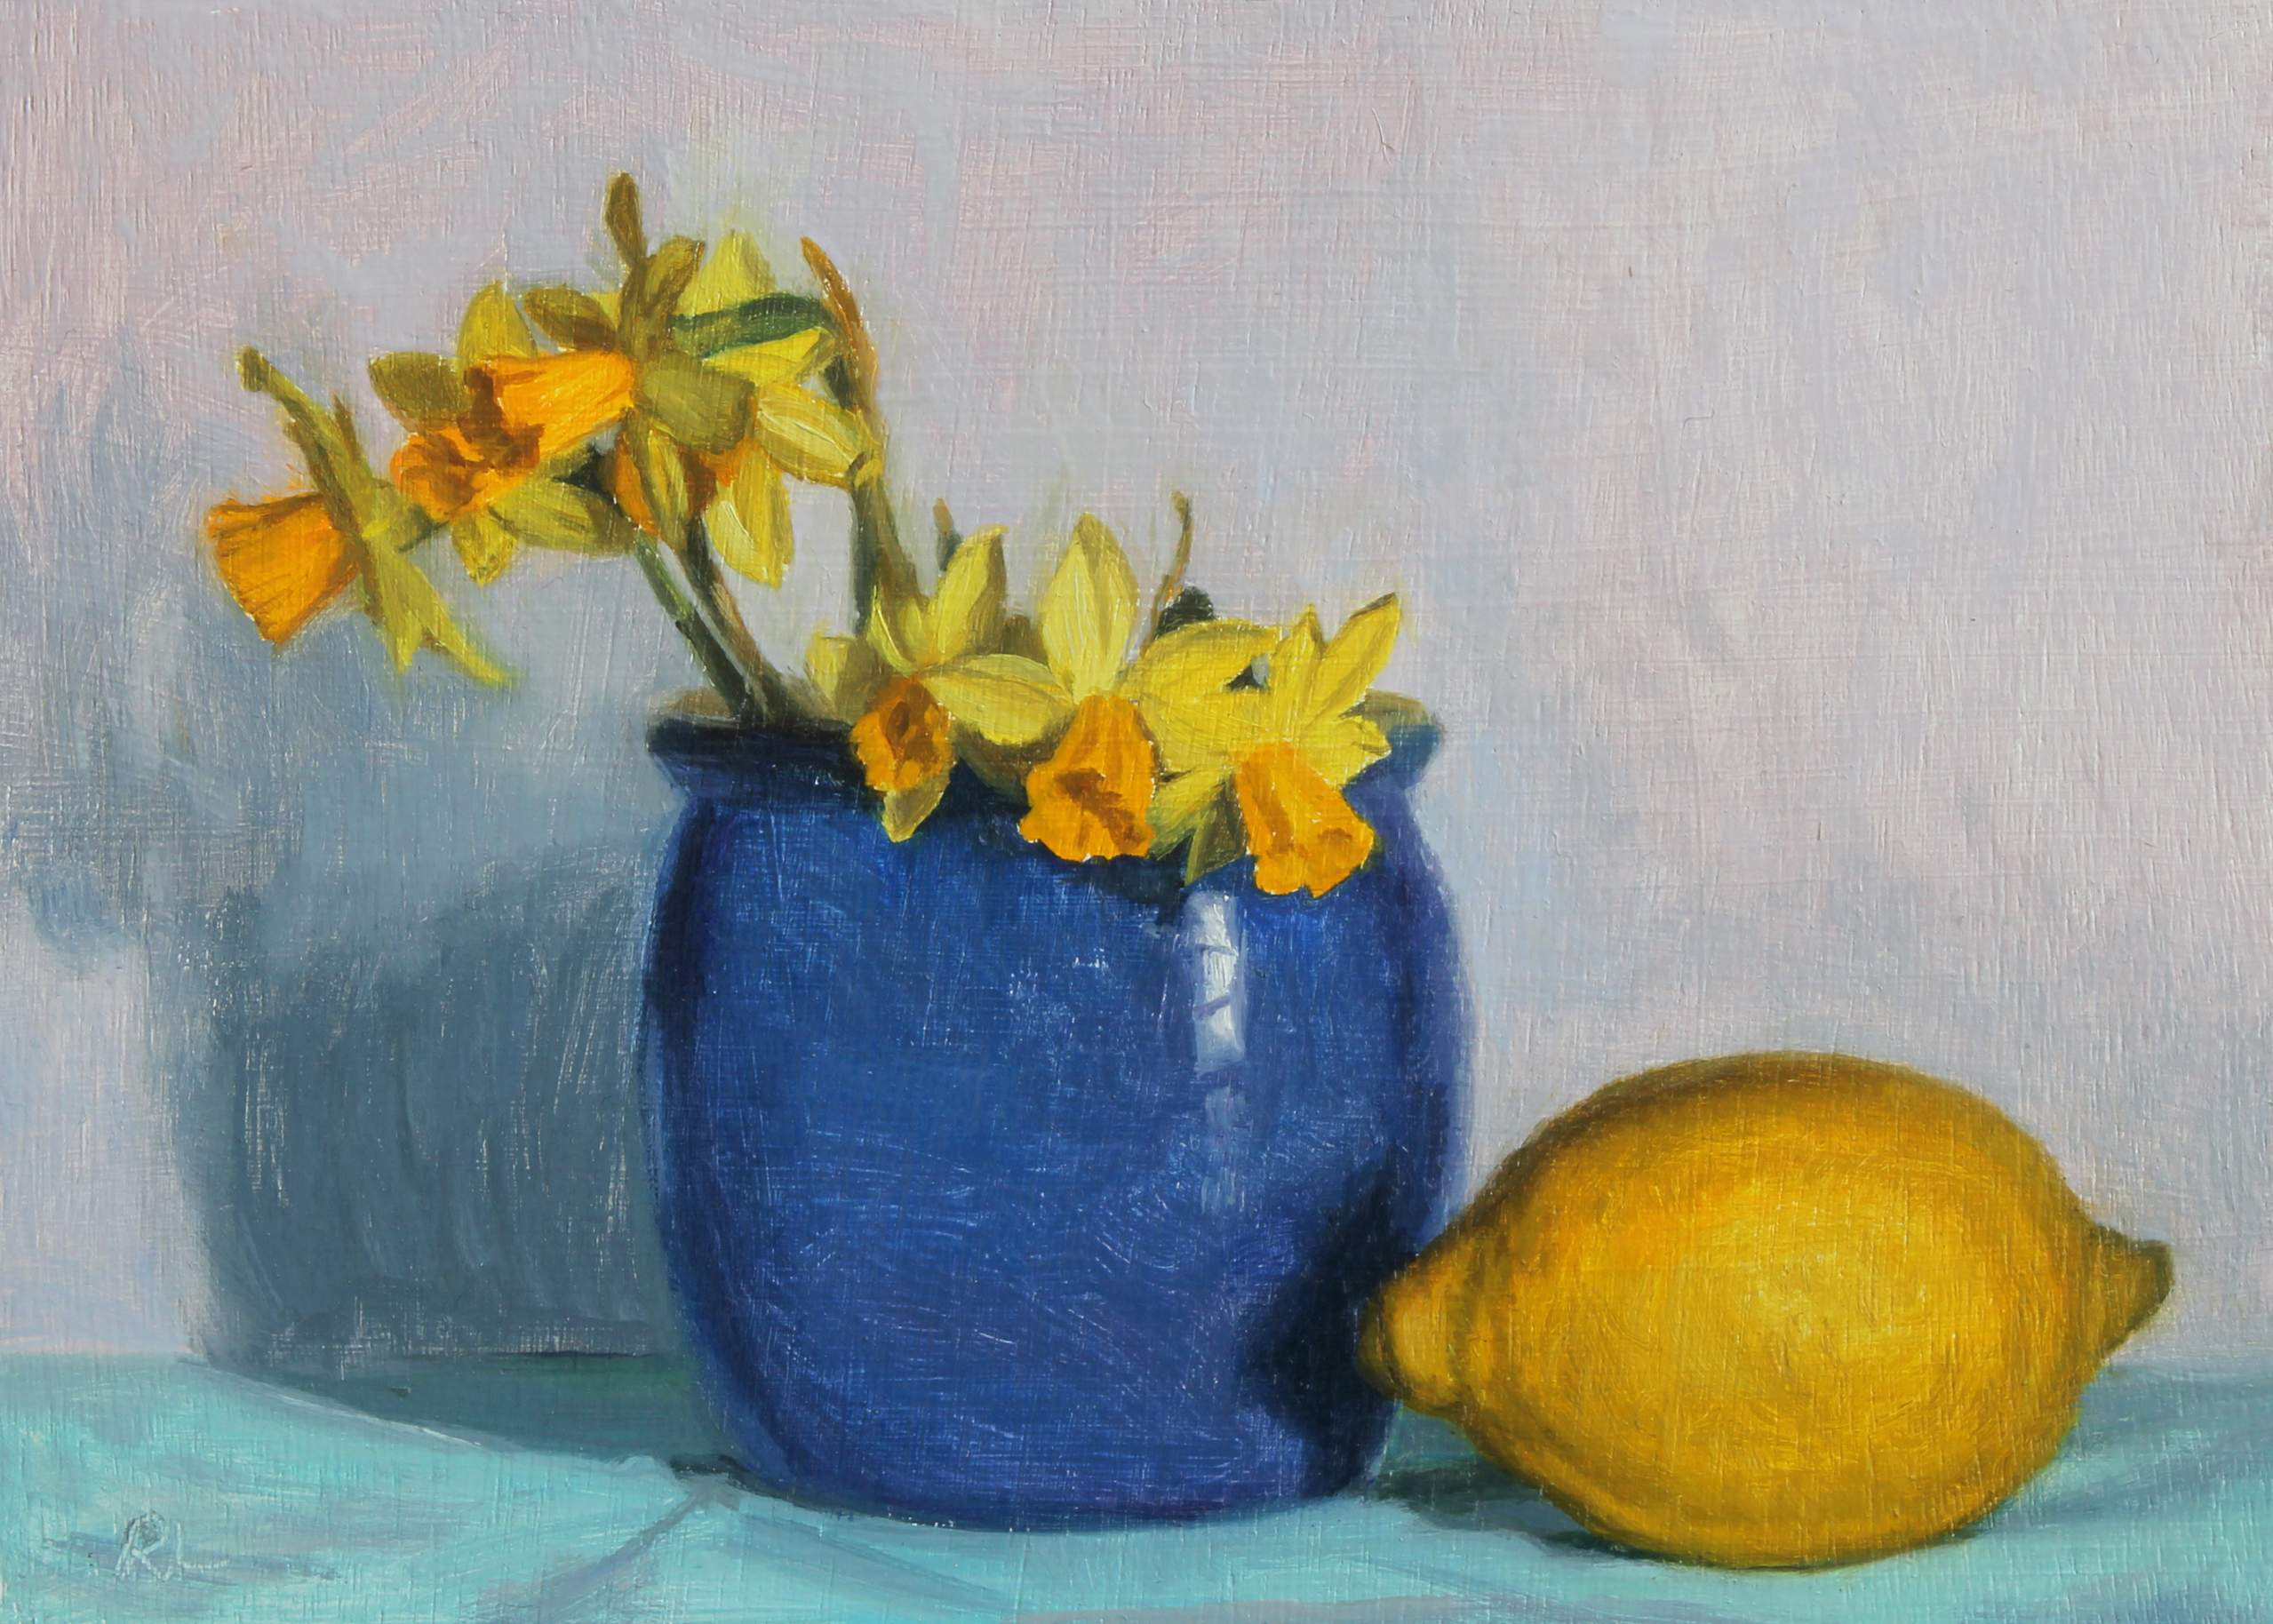 Daffodils in a Blue Jar